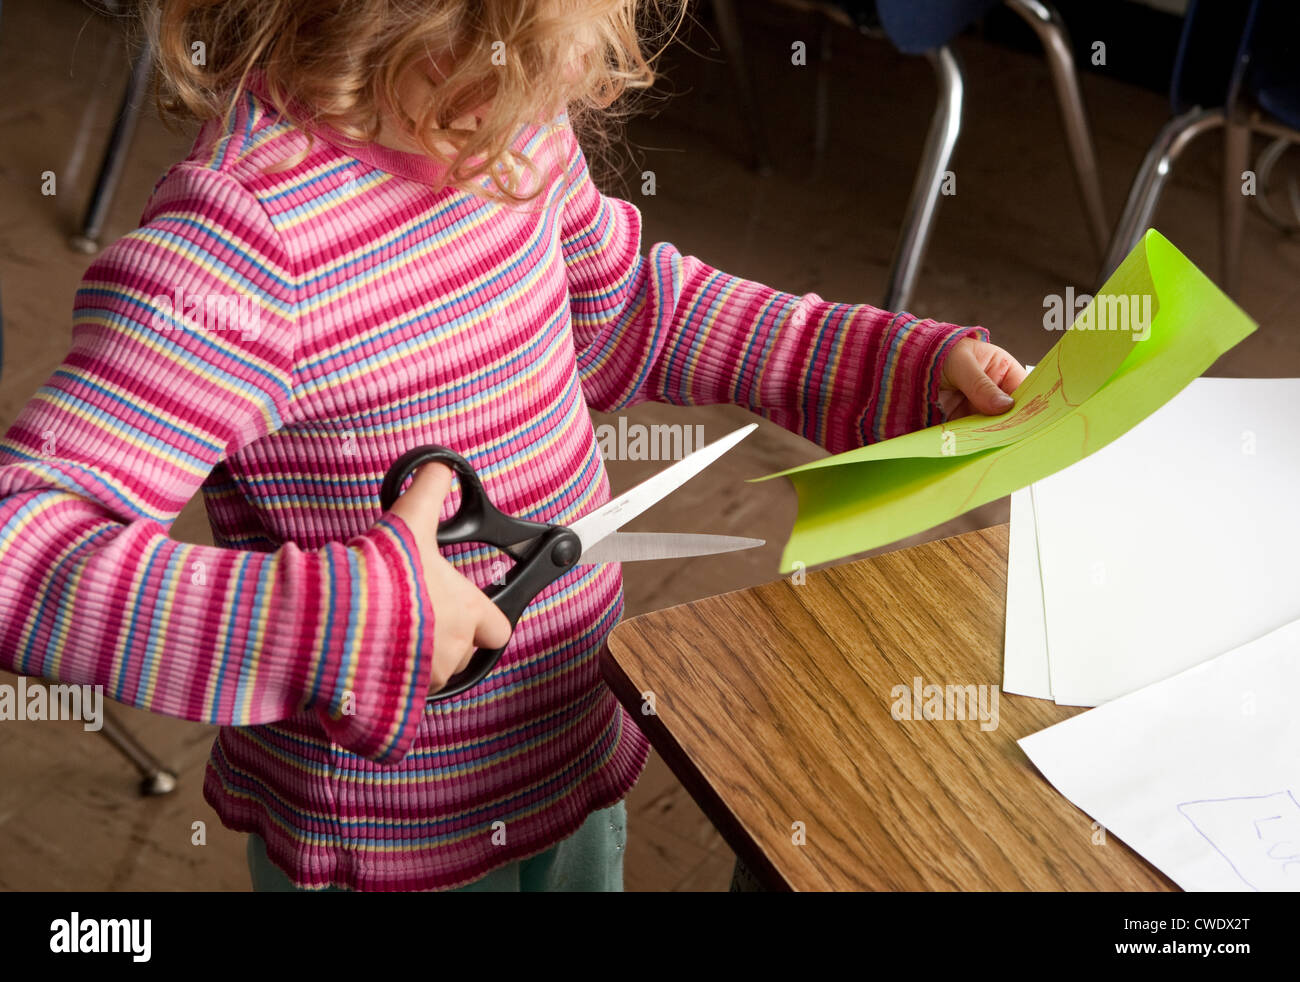 young white year old girl in colorful sweater uses large stock photo young white 5 year old girl in colorful sweater uses large dangerous scissors to cut through green paper out supervision